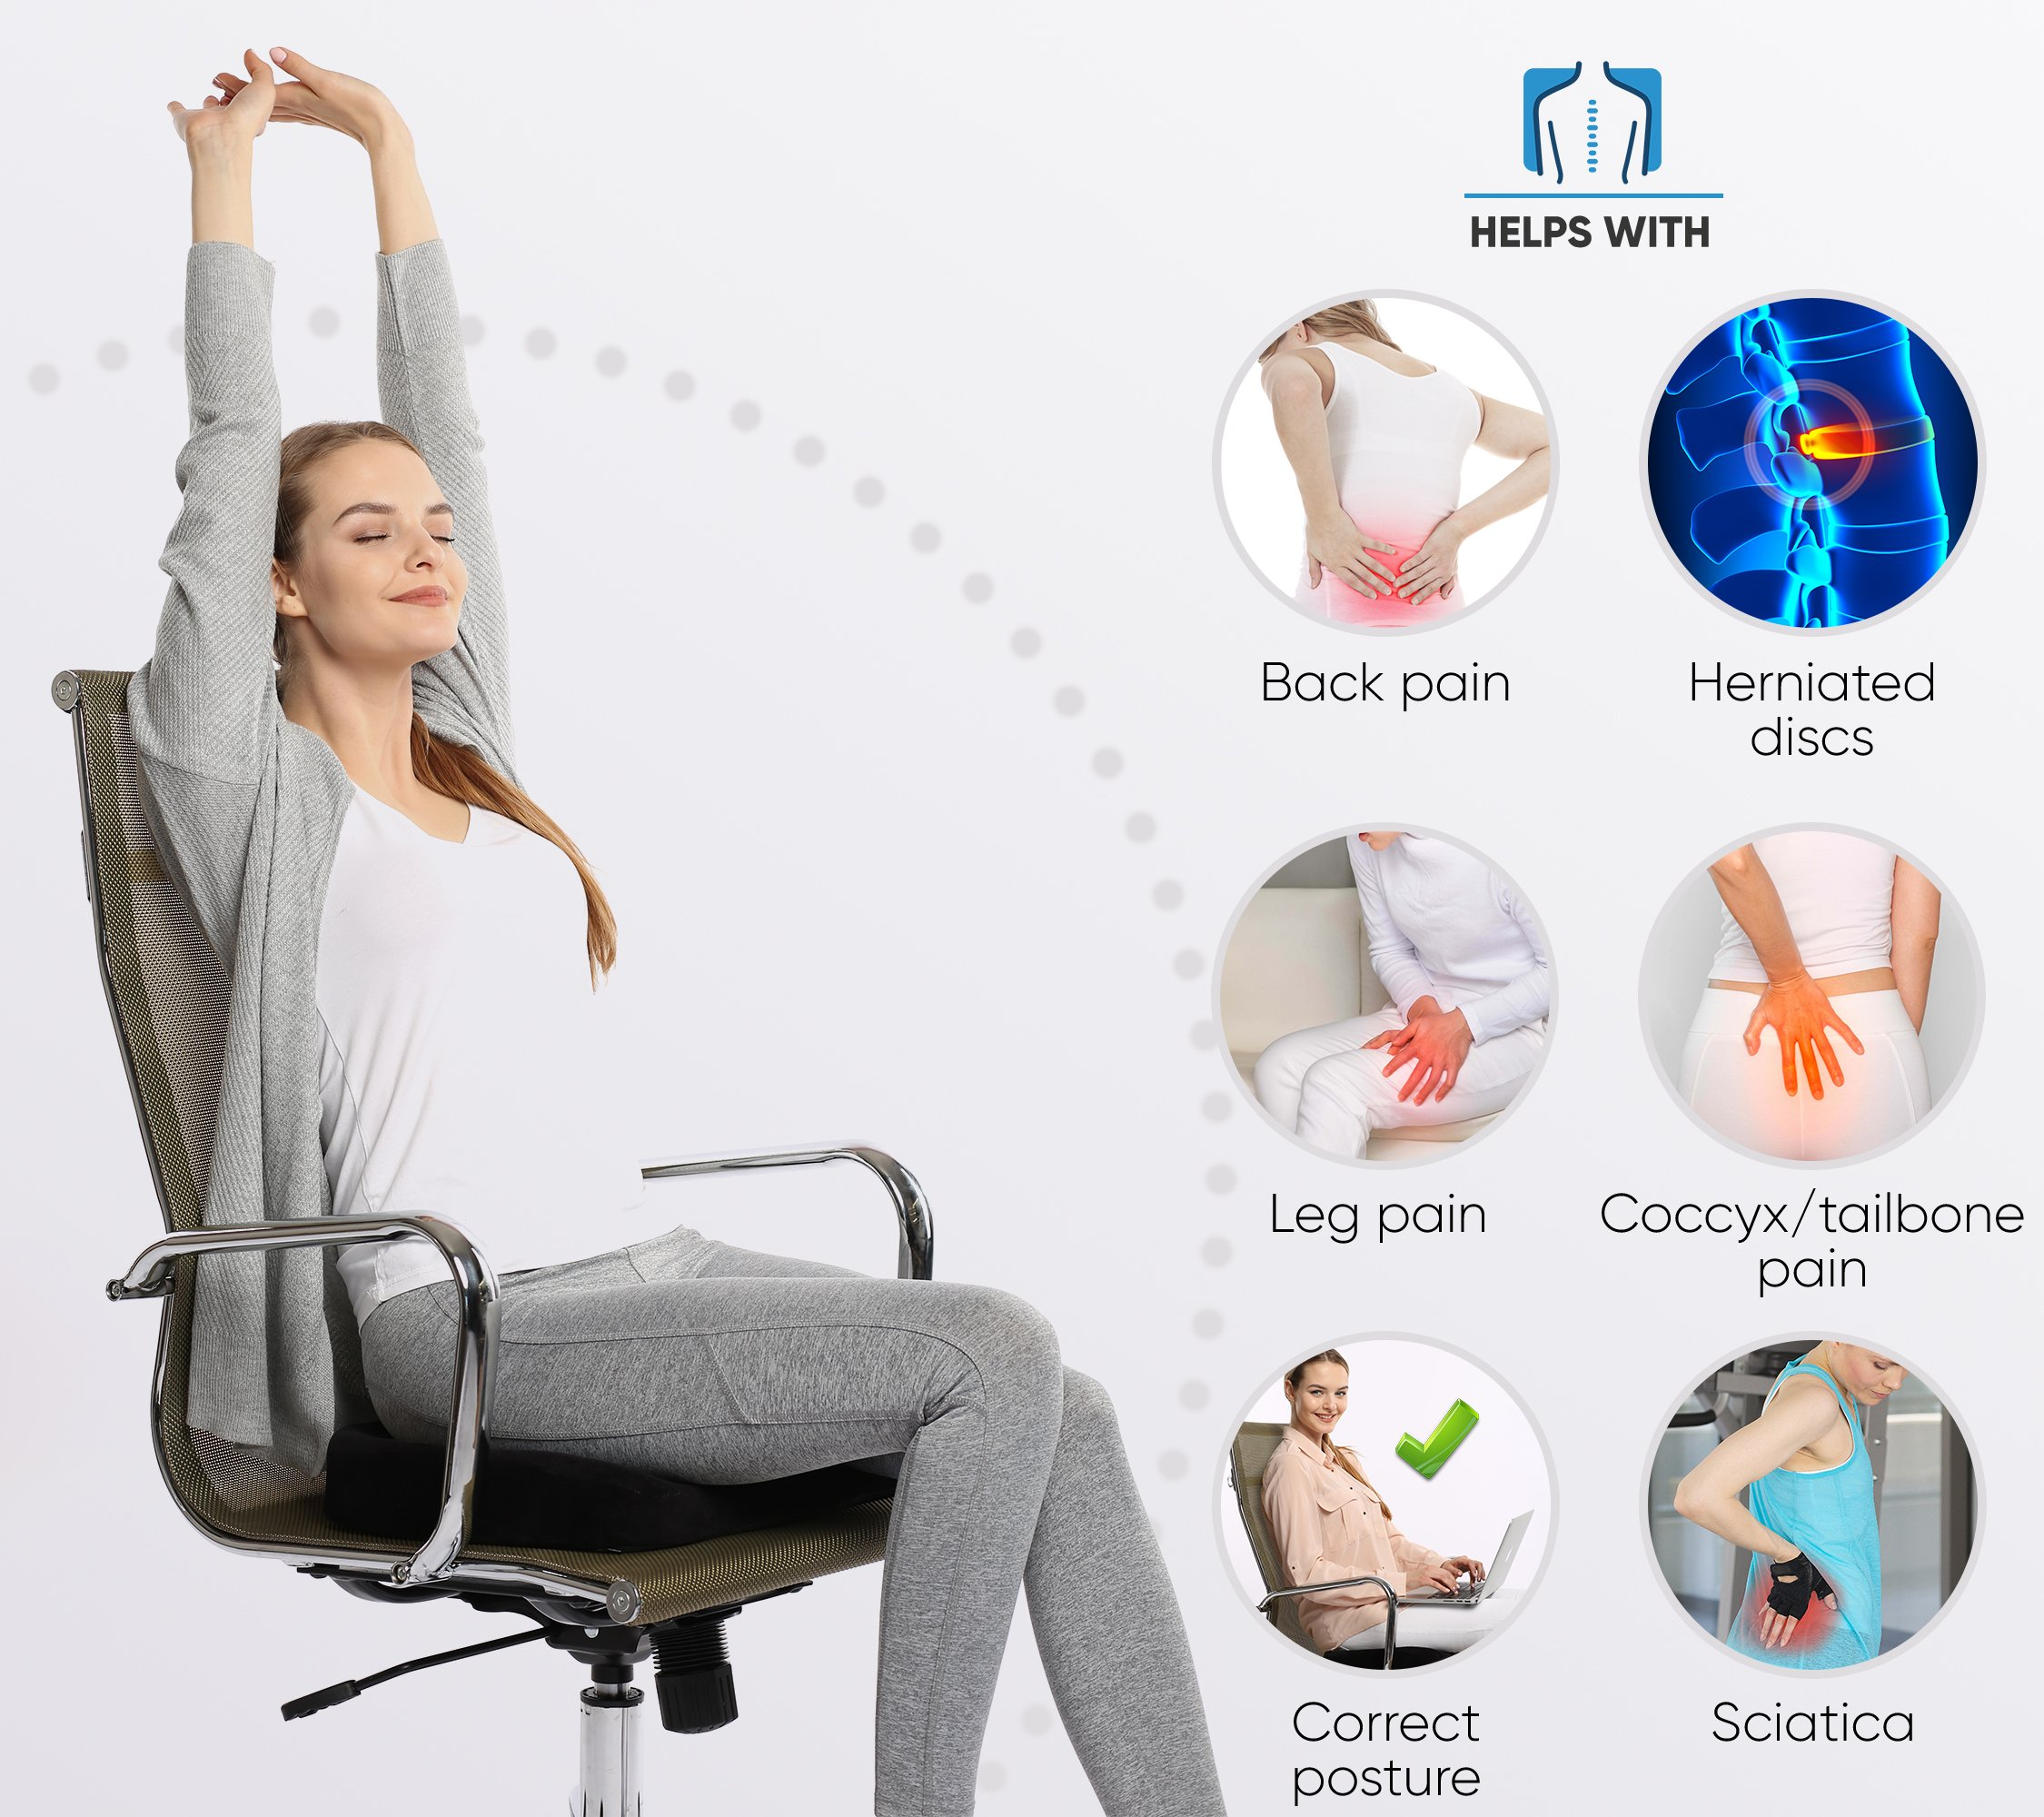 Everlasting Comfort Seat Cushion - Relieve Back, Sciatica, Coccyx and Tailbone Pain